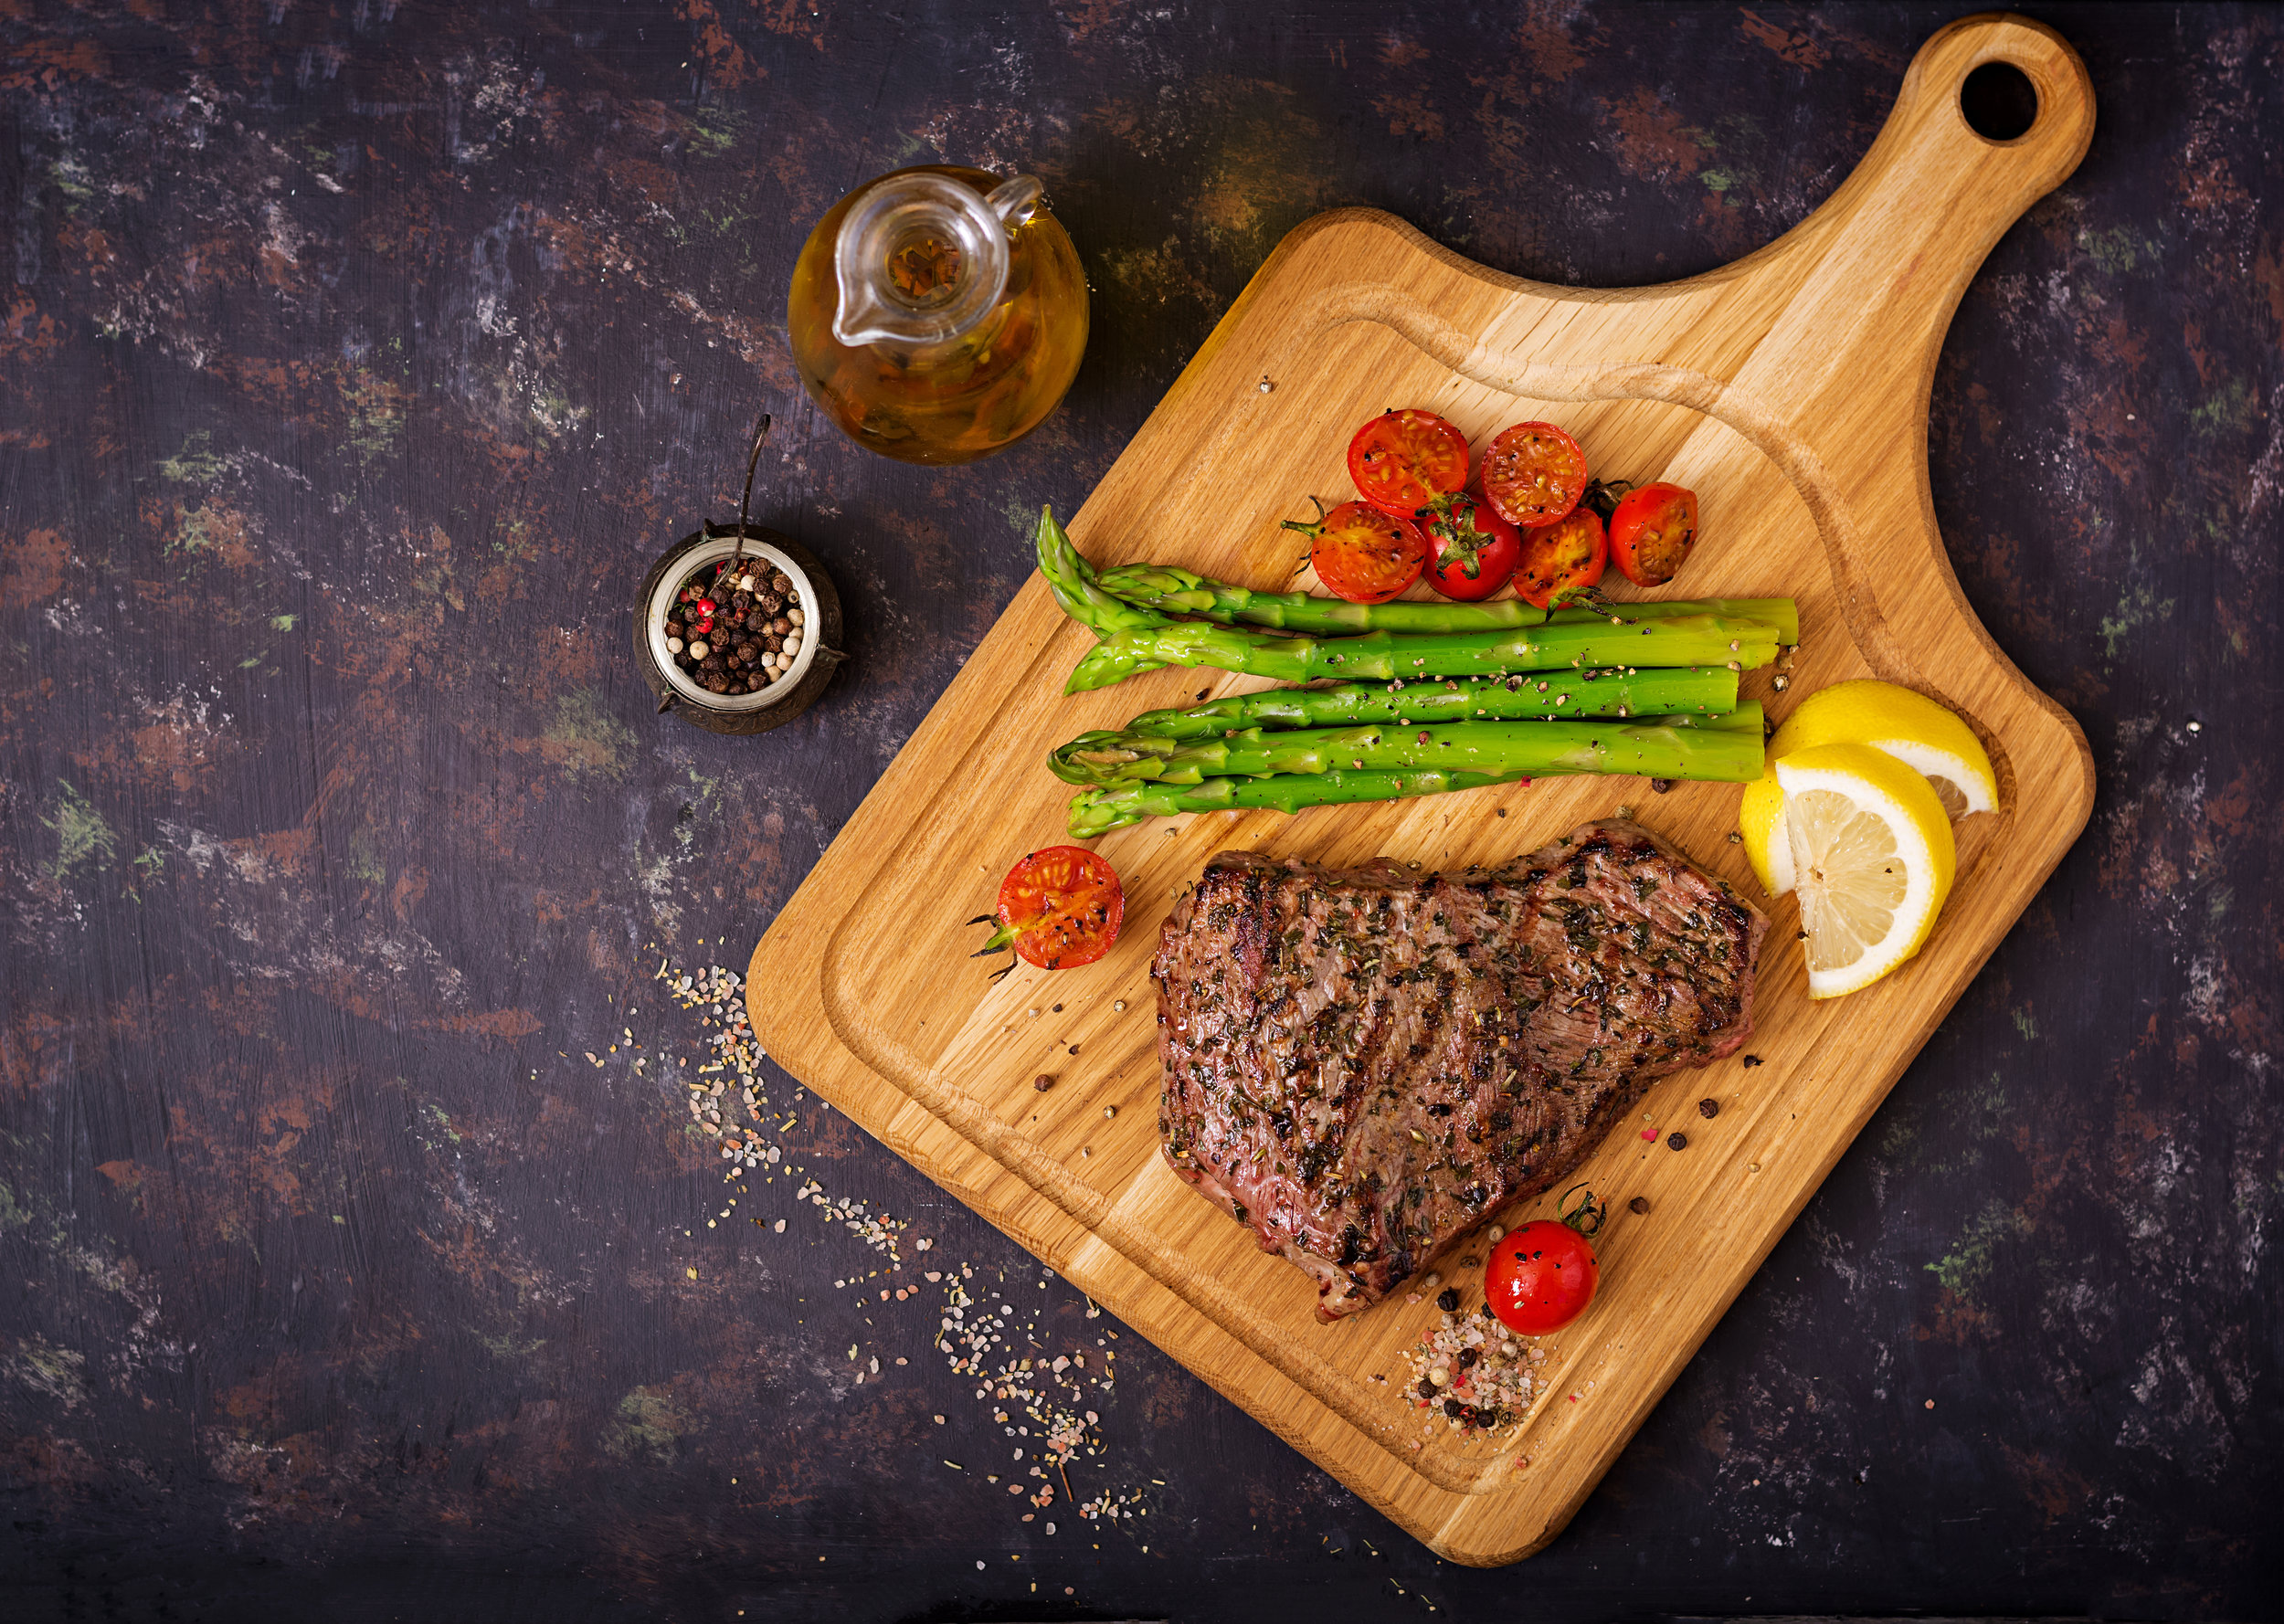 juicy-steak-rare-beef-with-spices-on-a-wooden-PP7FEYV.jpg